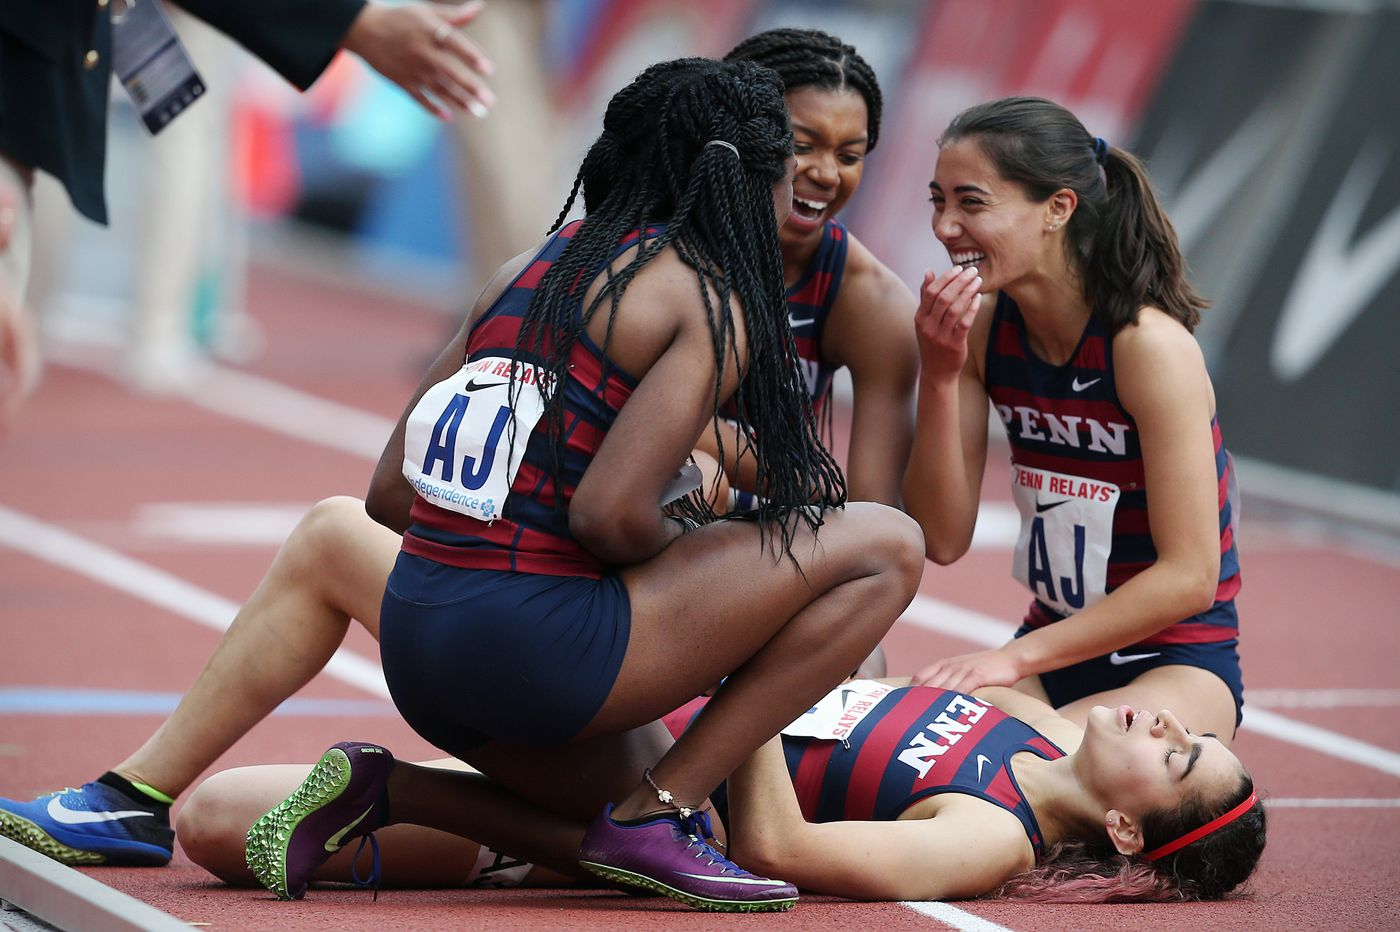 Penn women make history with first distance medley relay win at Penn Relays